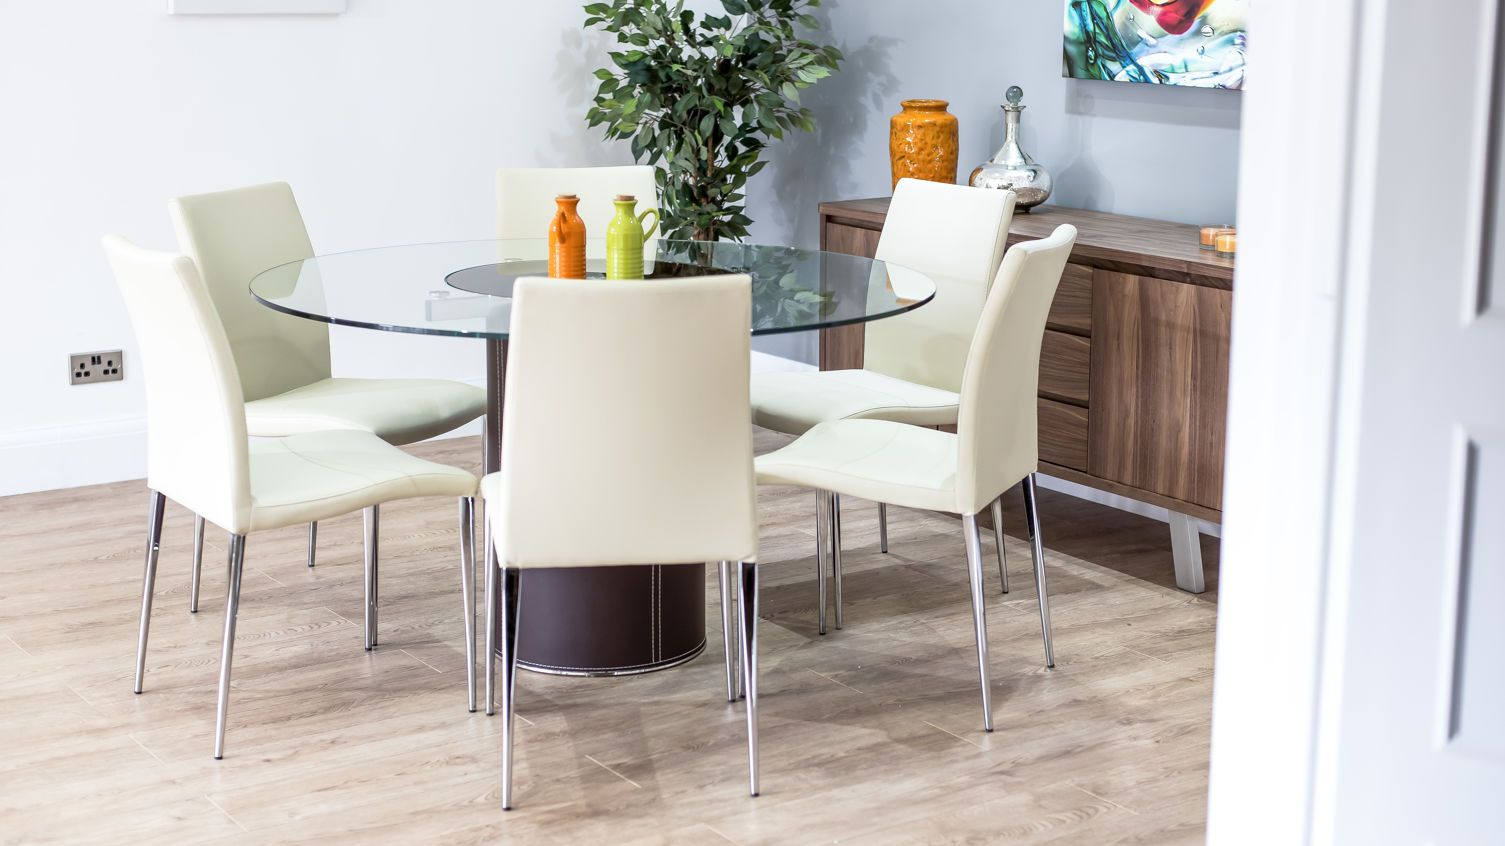 100 Round 6 Person Dining Table Best Office Furniture Check More At Http Livelylighting Glass Round Dining Table Glass Dining Table Set Glass Dining Table